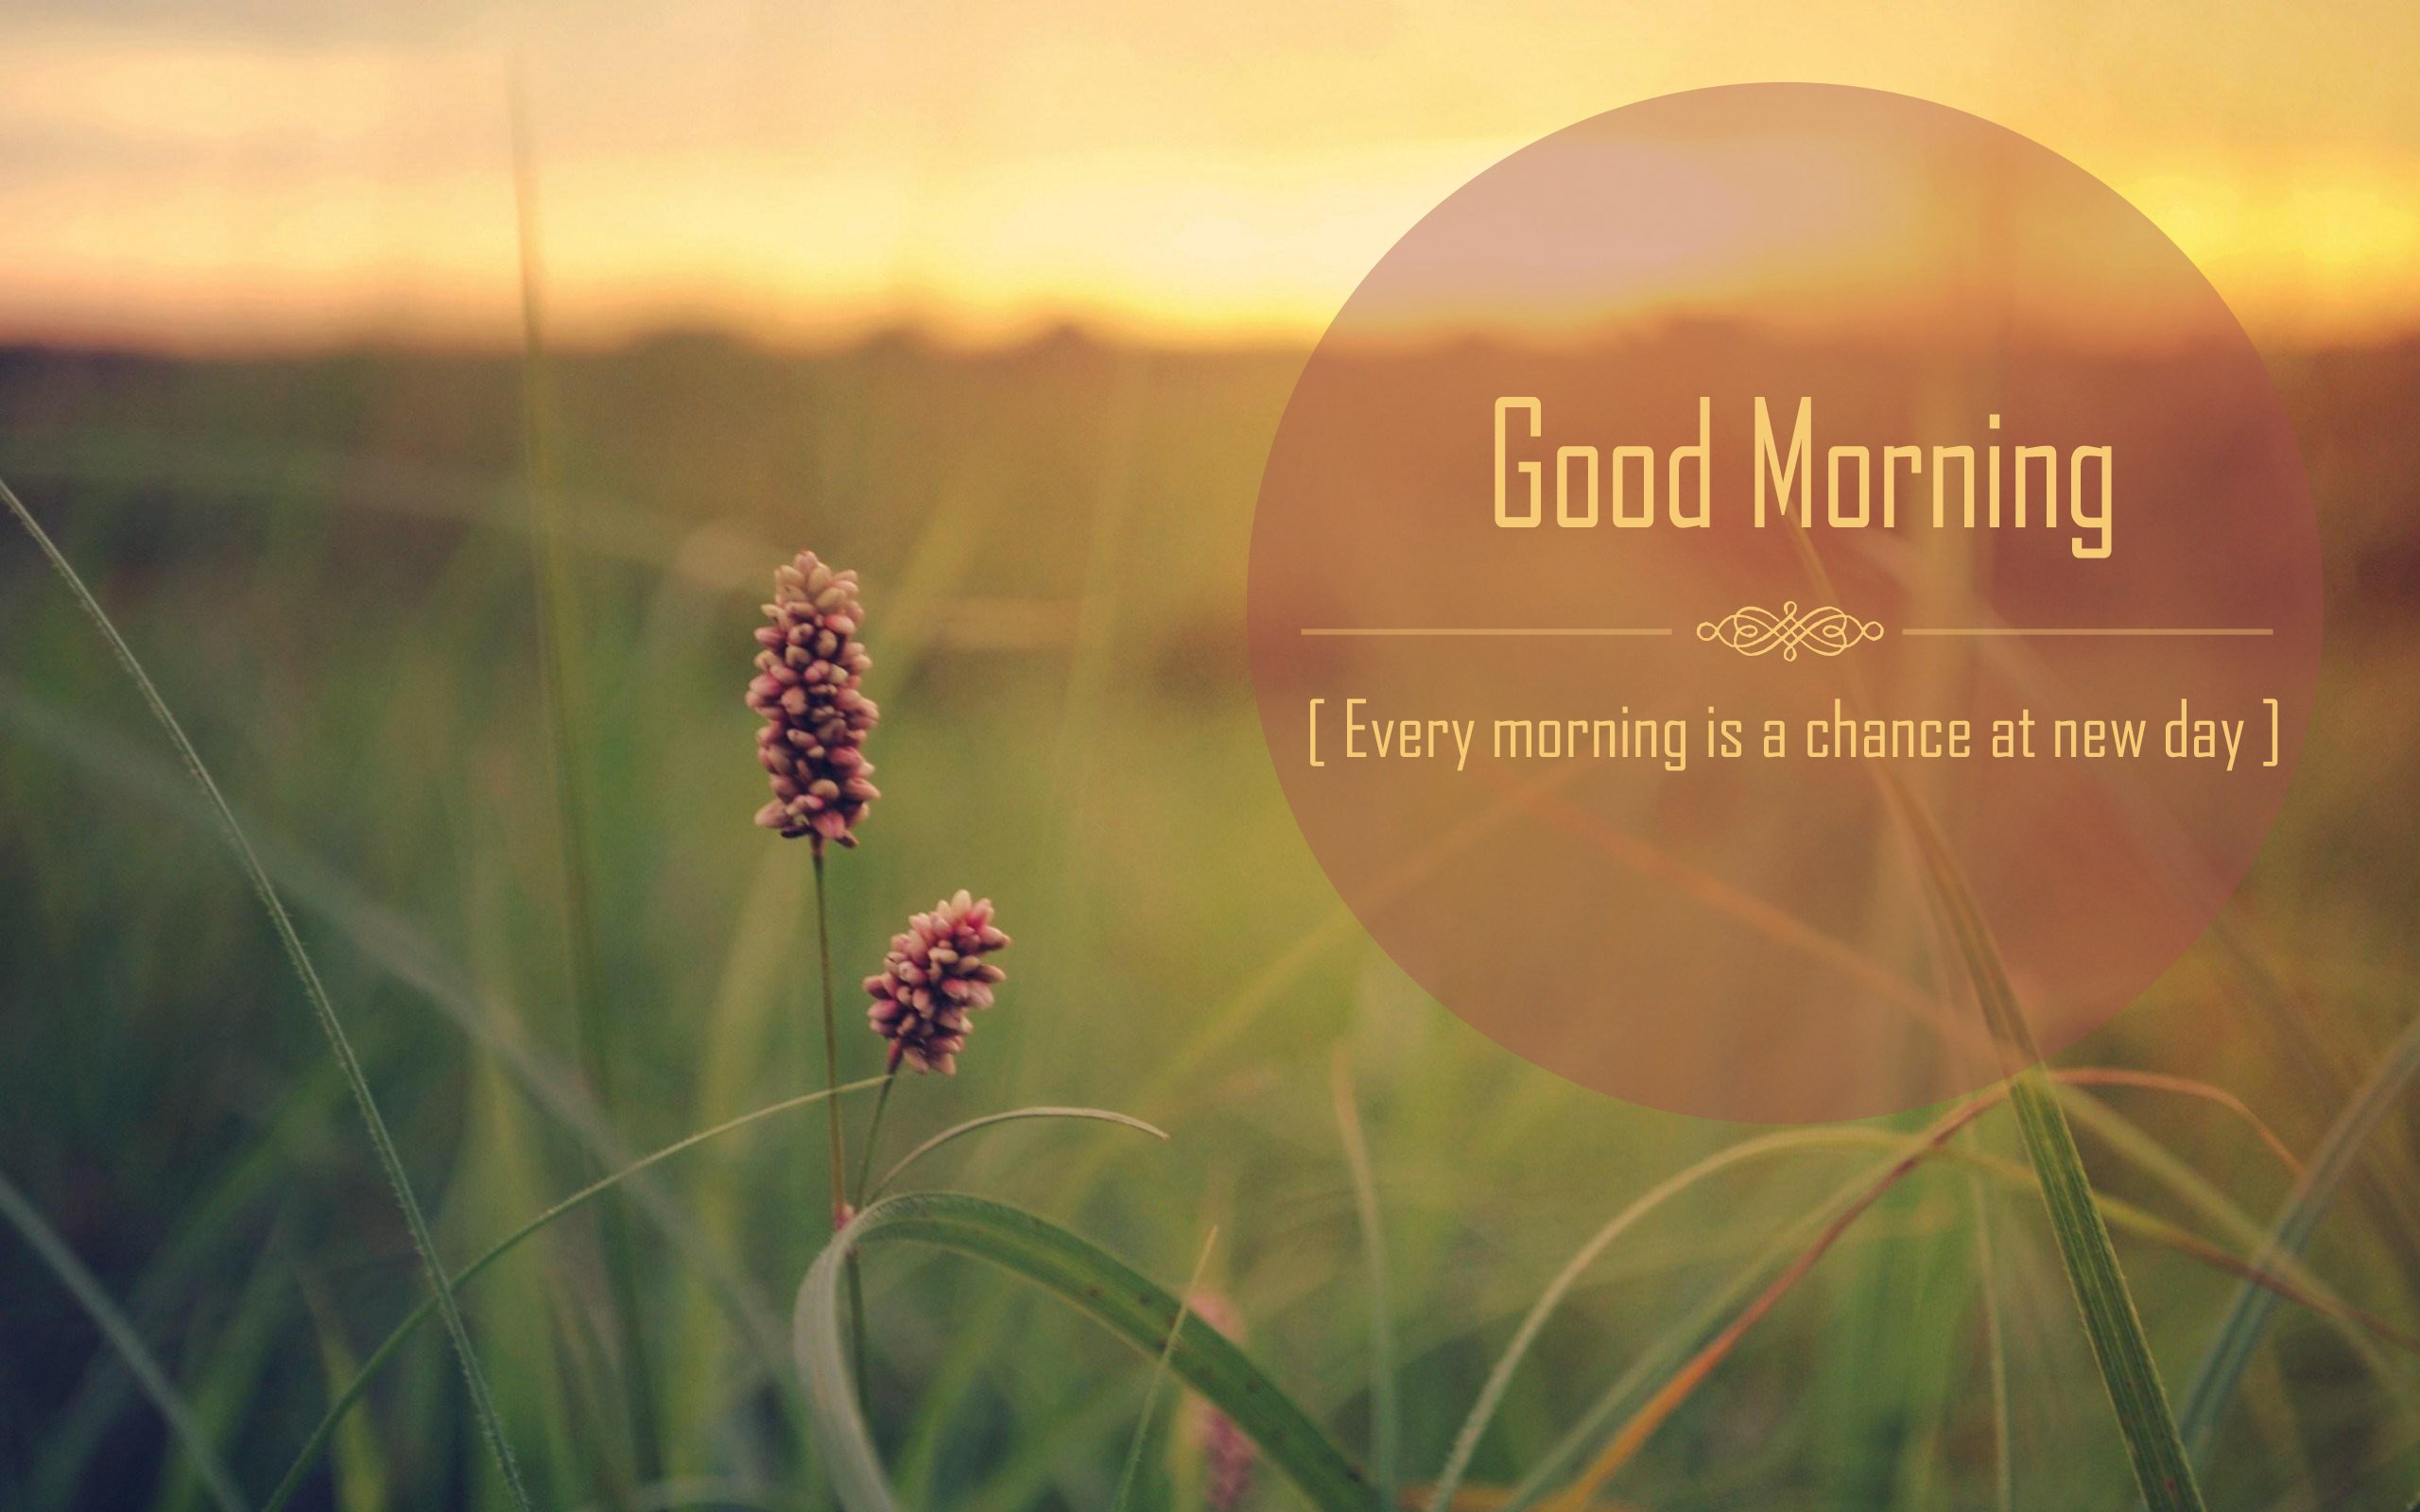 Good Morning Quotes For Him Short: Good Morning Fall Quotes. QuotesGram